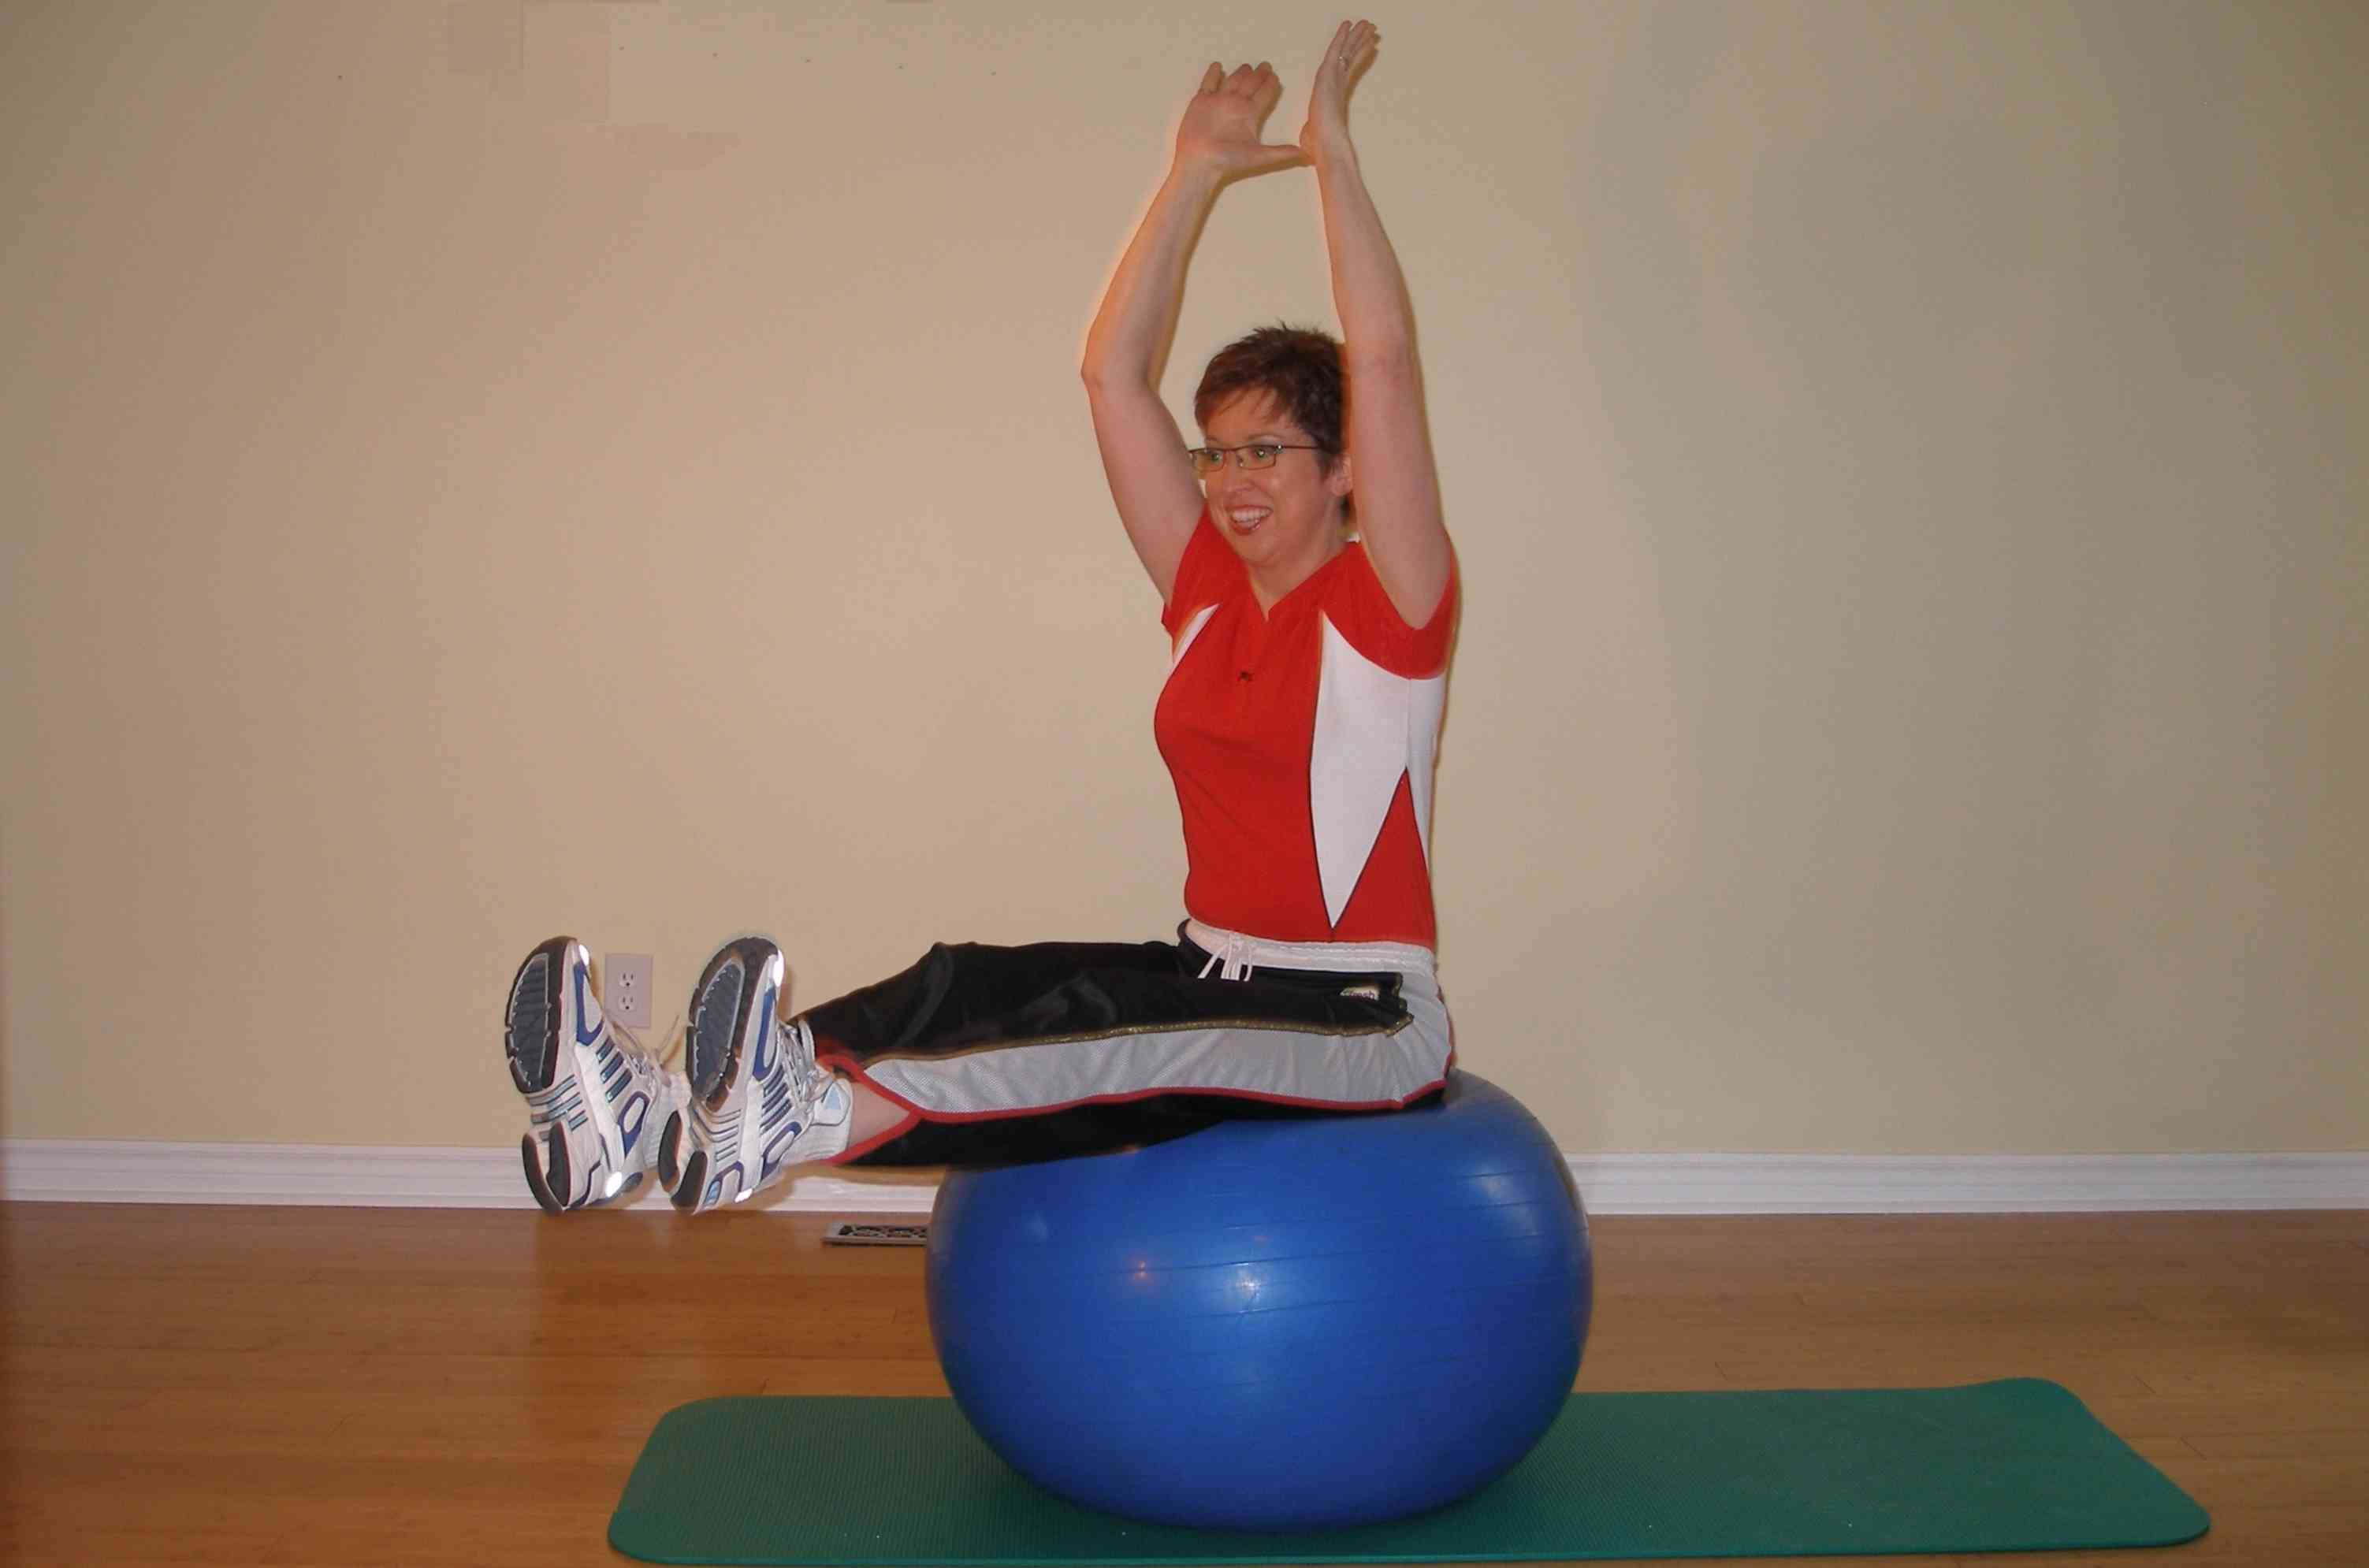 bilateral leg raise on the stability ball finish